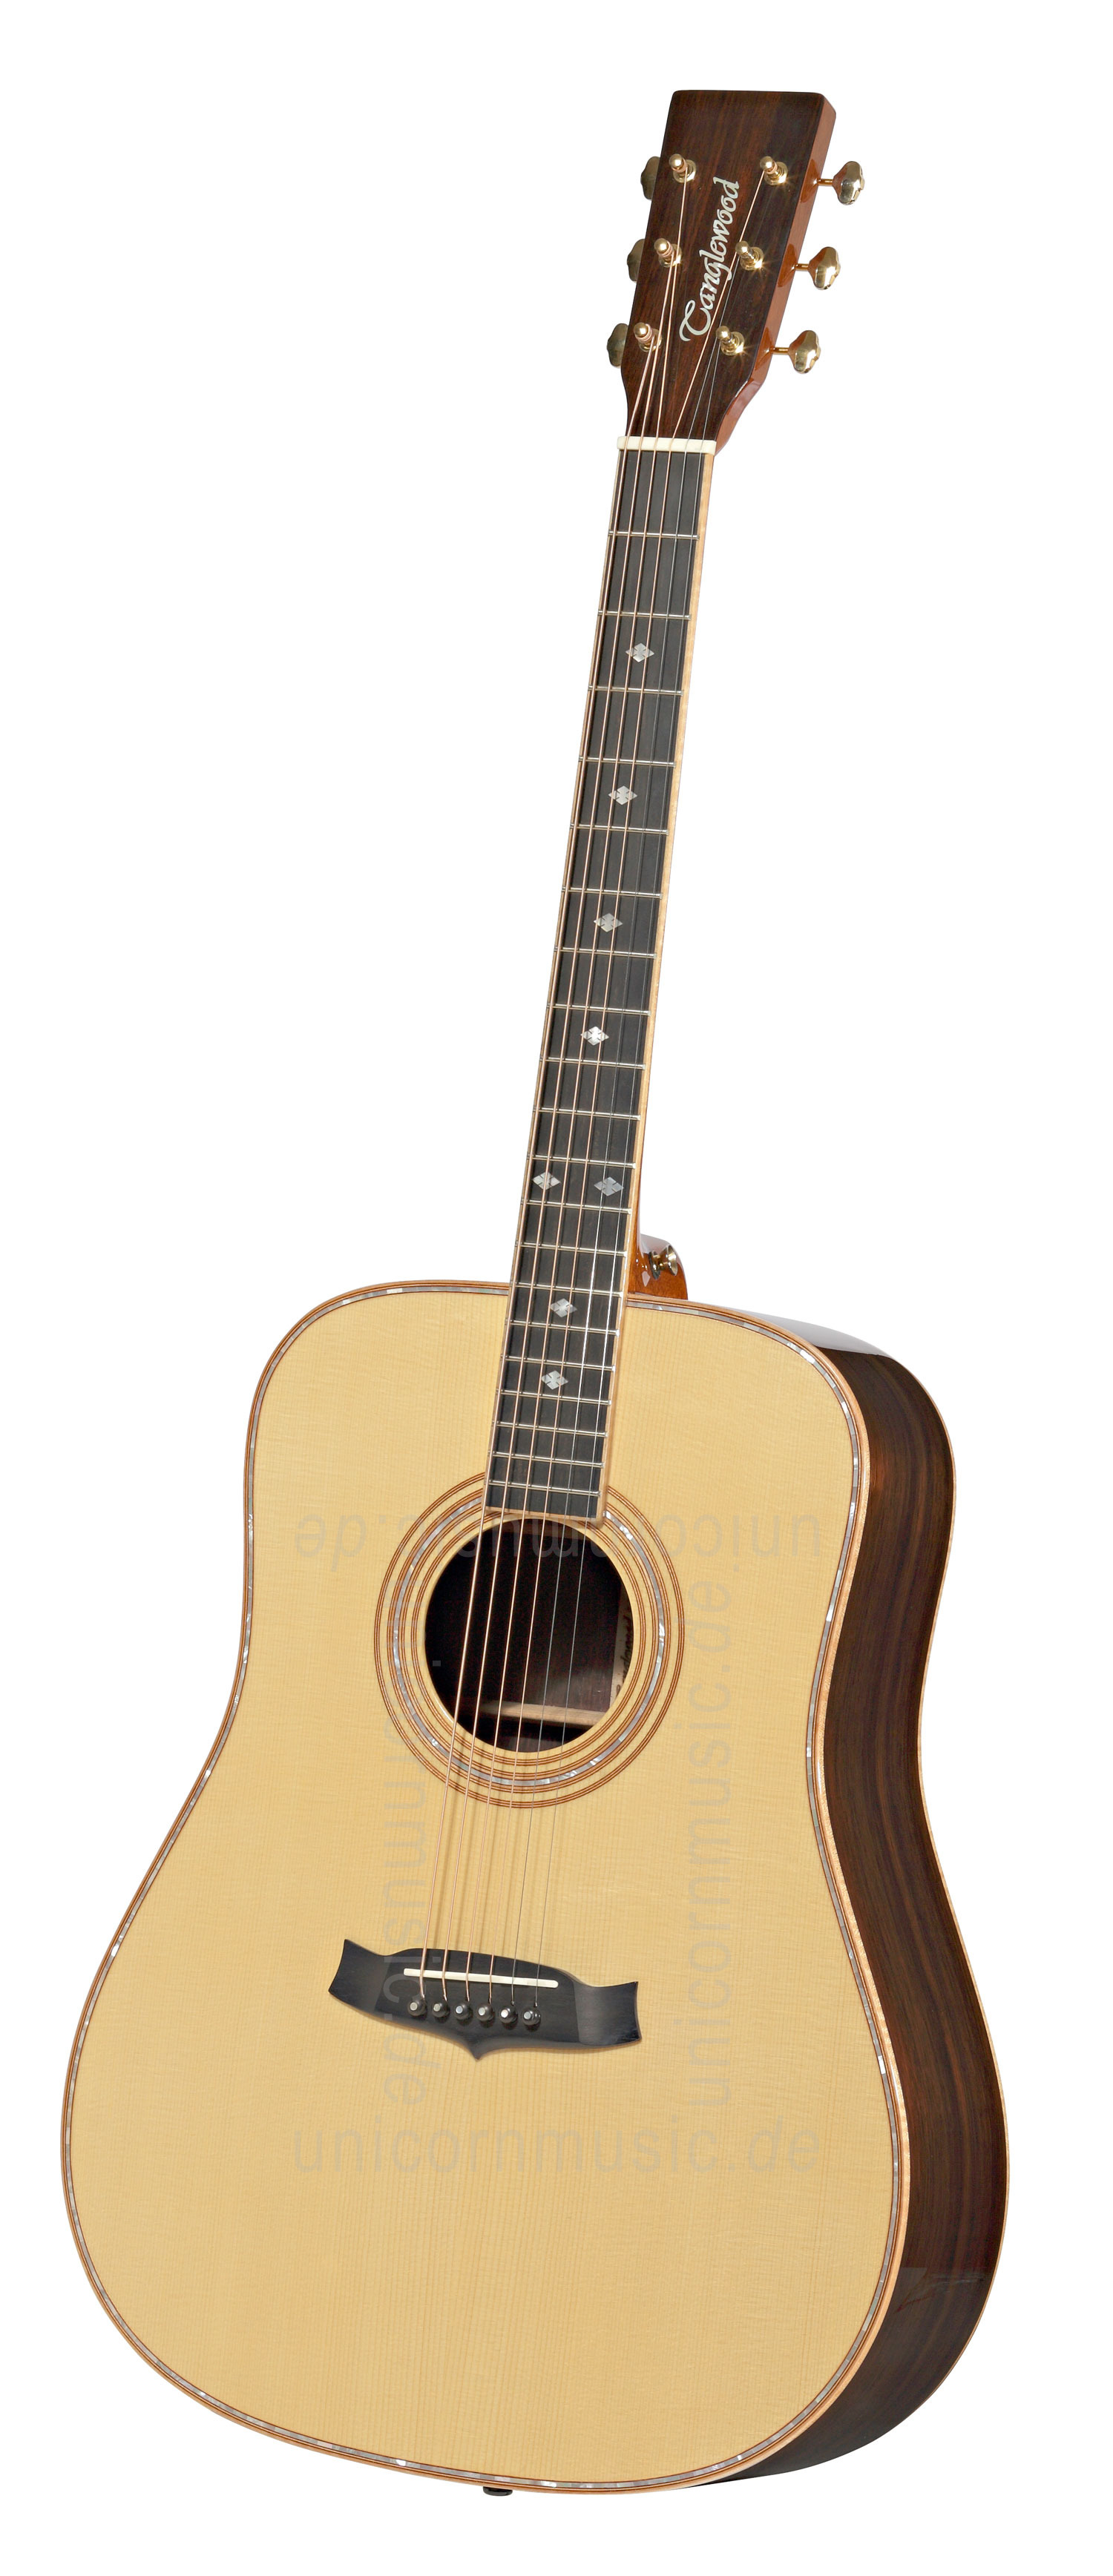 to article description / price Acoustic Guitar TANGLEWOOD TW90/MR ZC - Sundance Series - Dreadnought - all solid + hard case